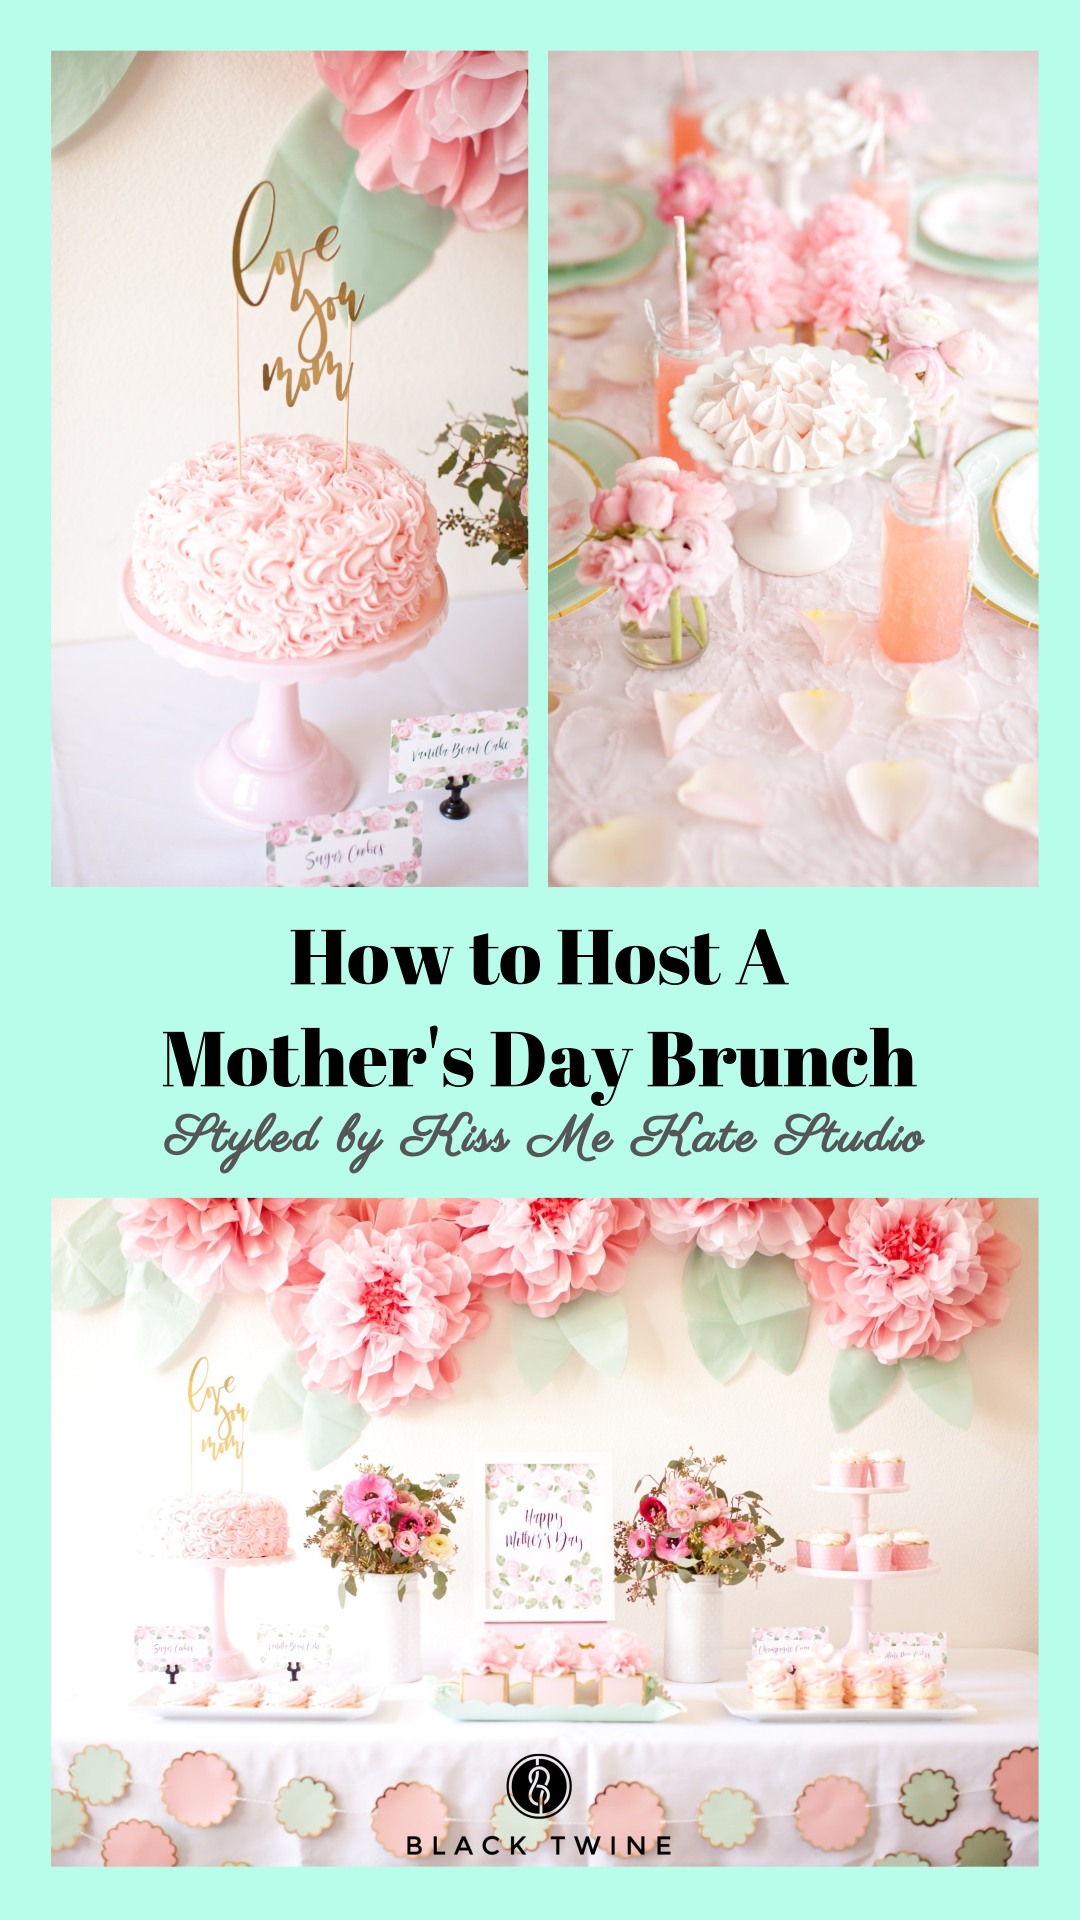 How to Host a Mother's Day Brunch Styled by Kiss Me Kate Studio |Black Twine